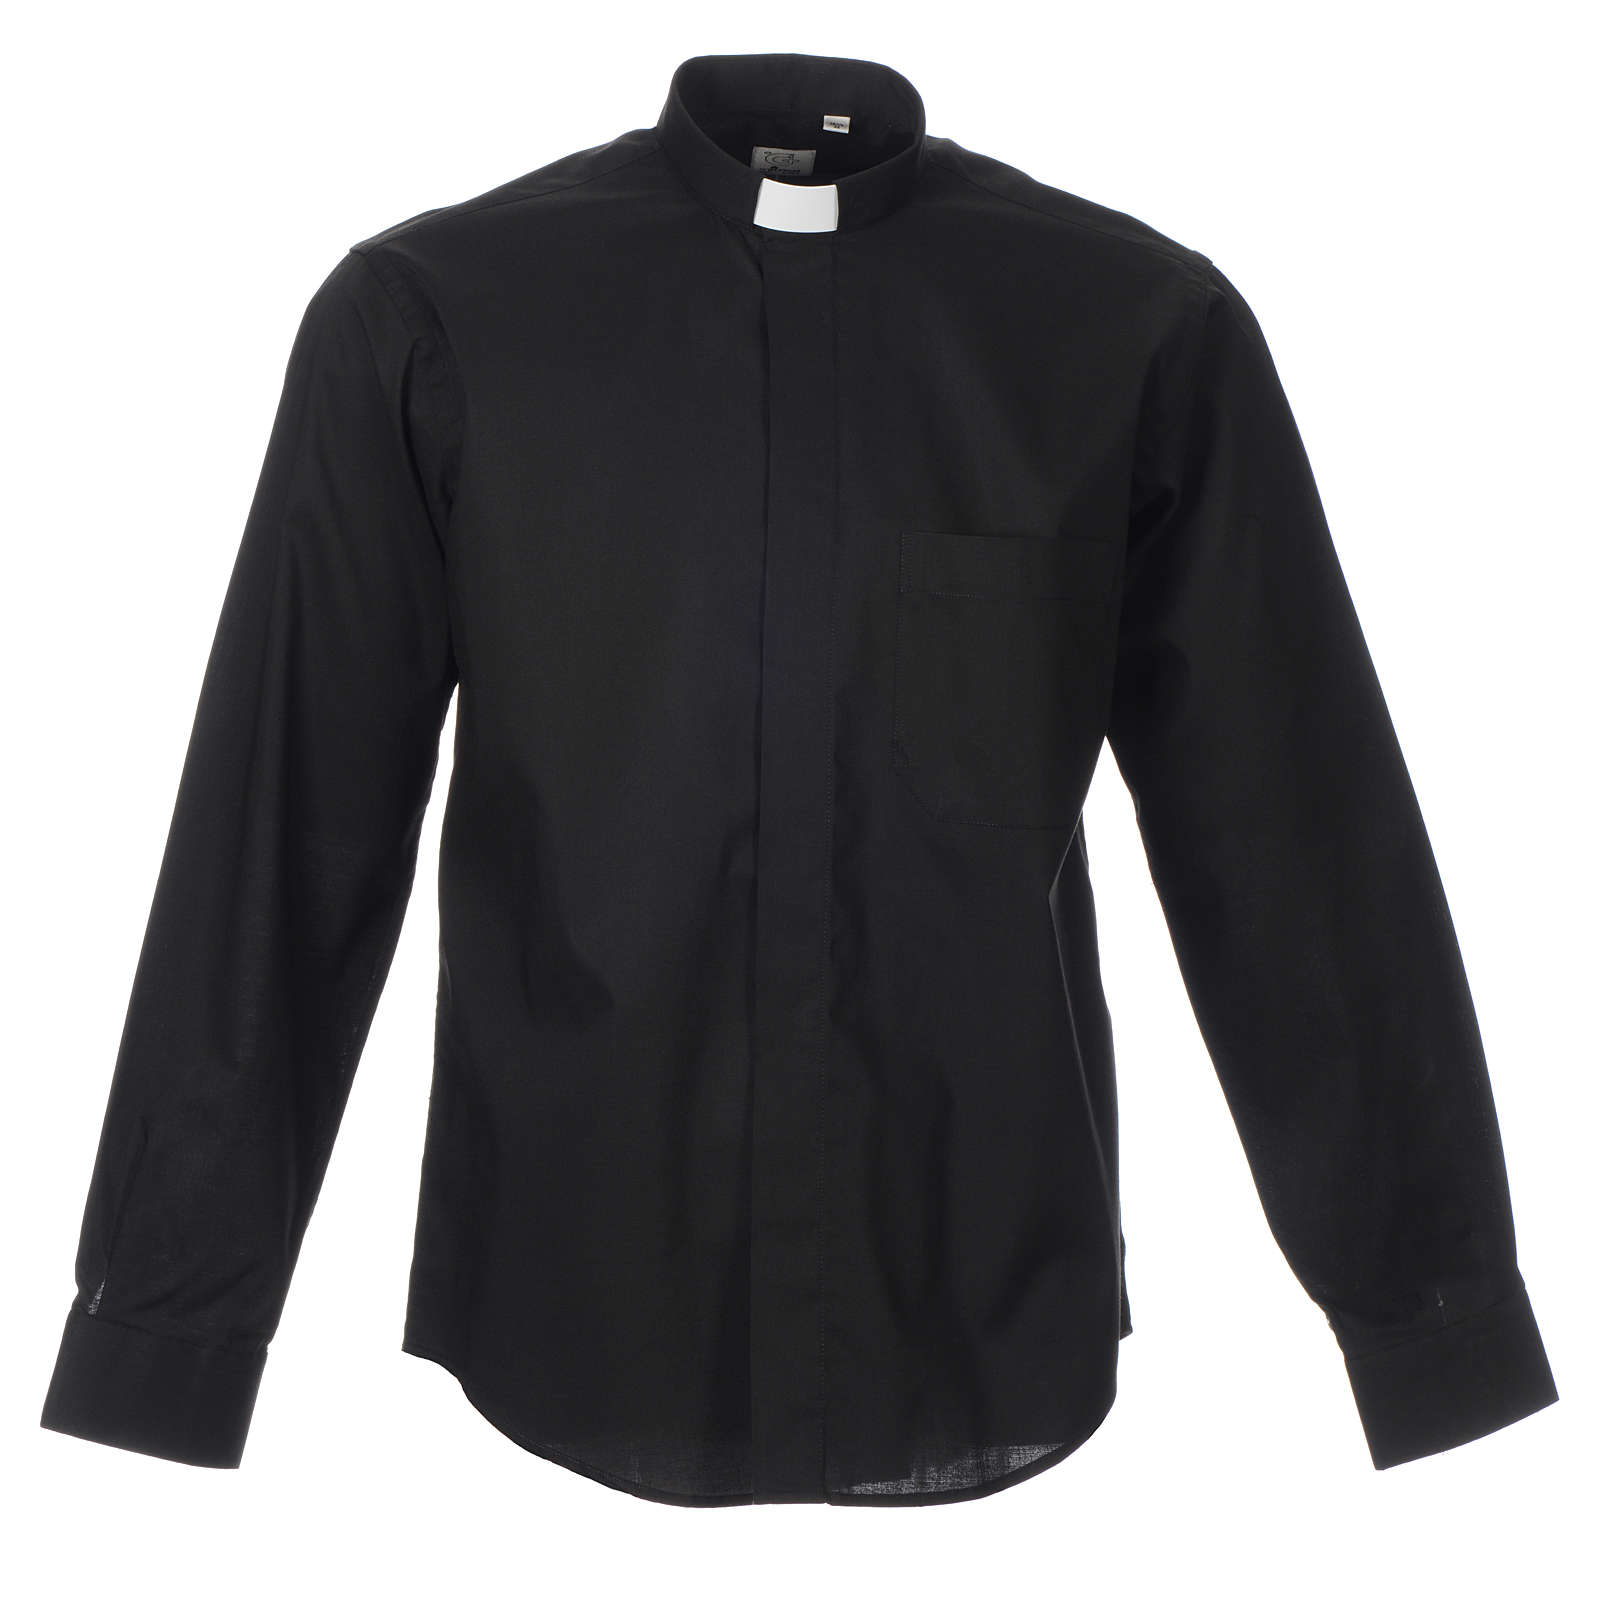 STOCK Camisa clergy manga larga negra 4